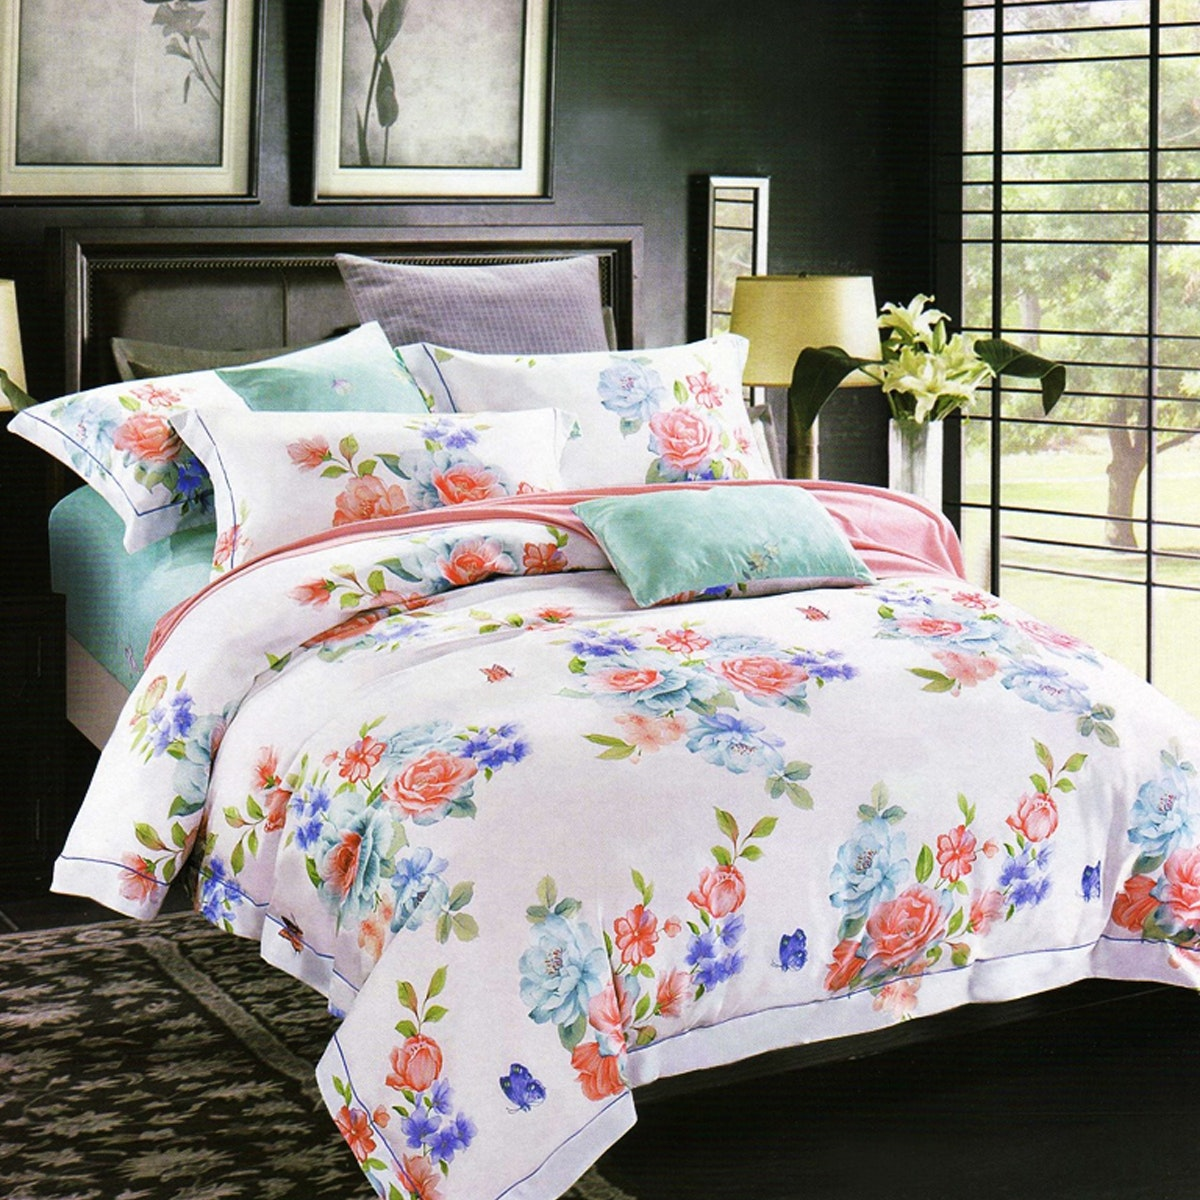 Sleep Buddy Set Sprei White Floral Cotton Sateen 180x200x30